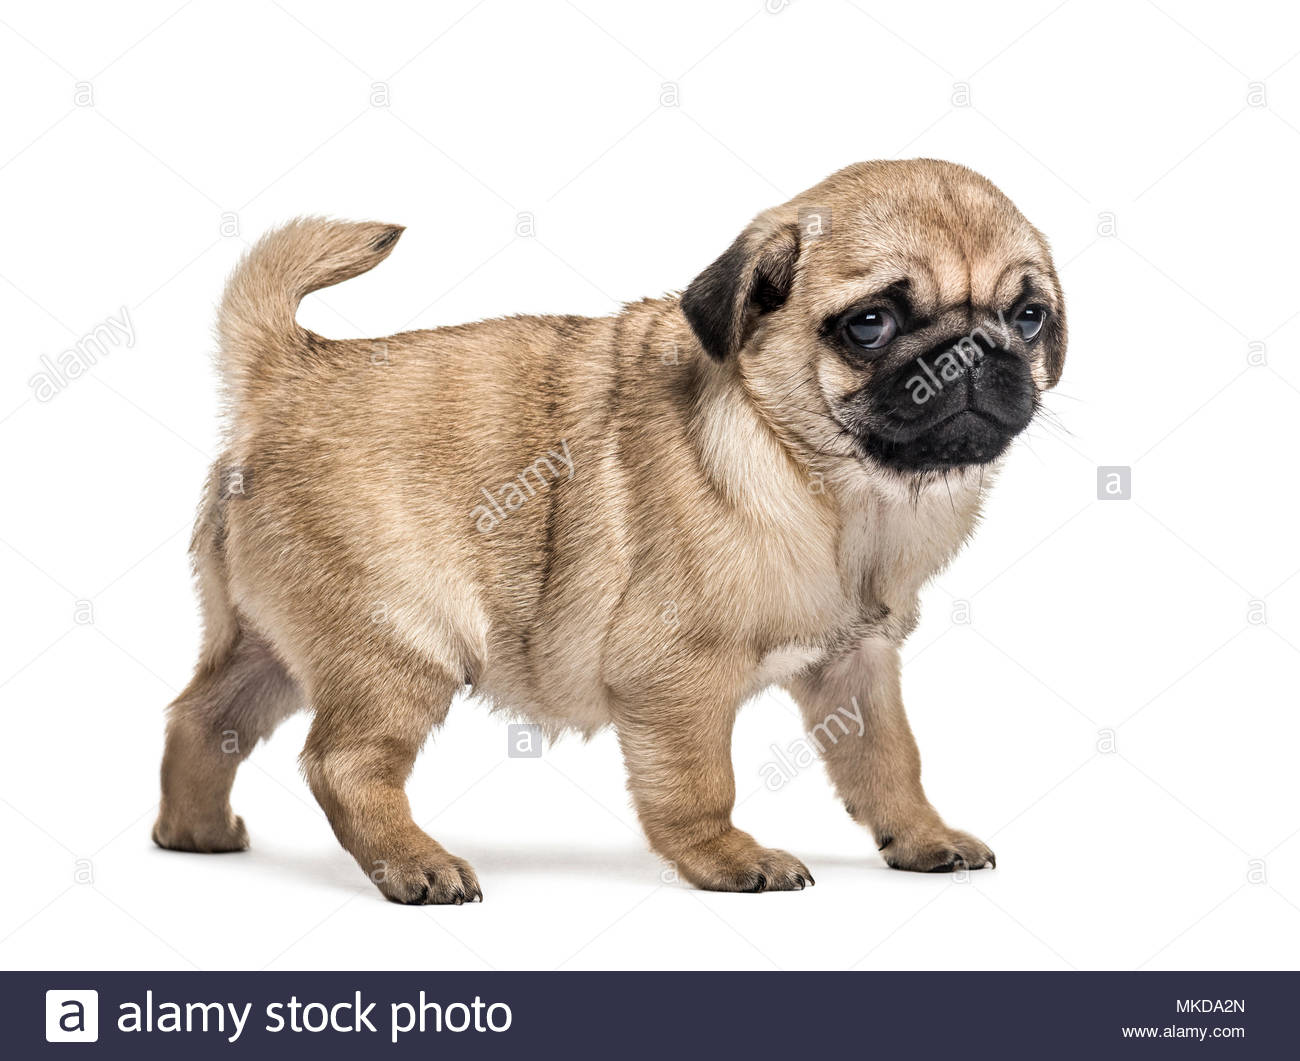 Pug puppy standing, isolated on white background - Stock Image